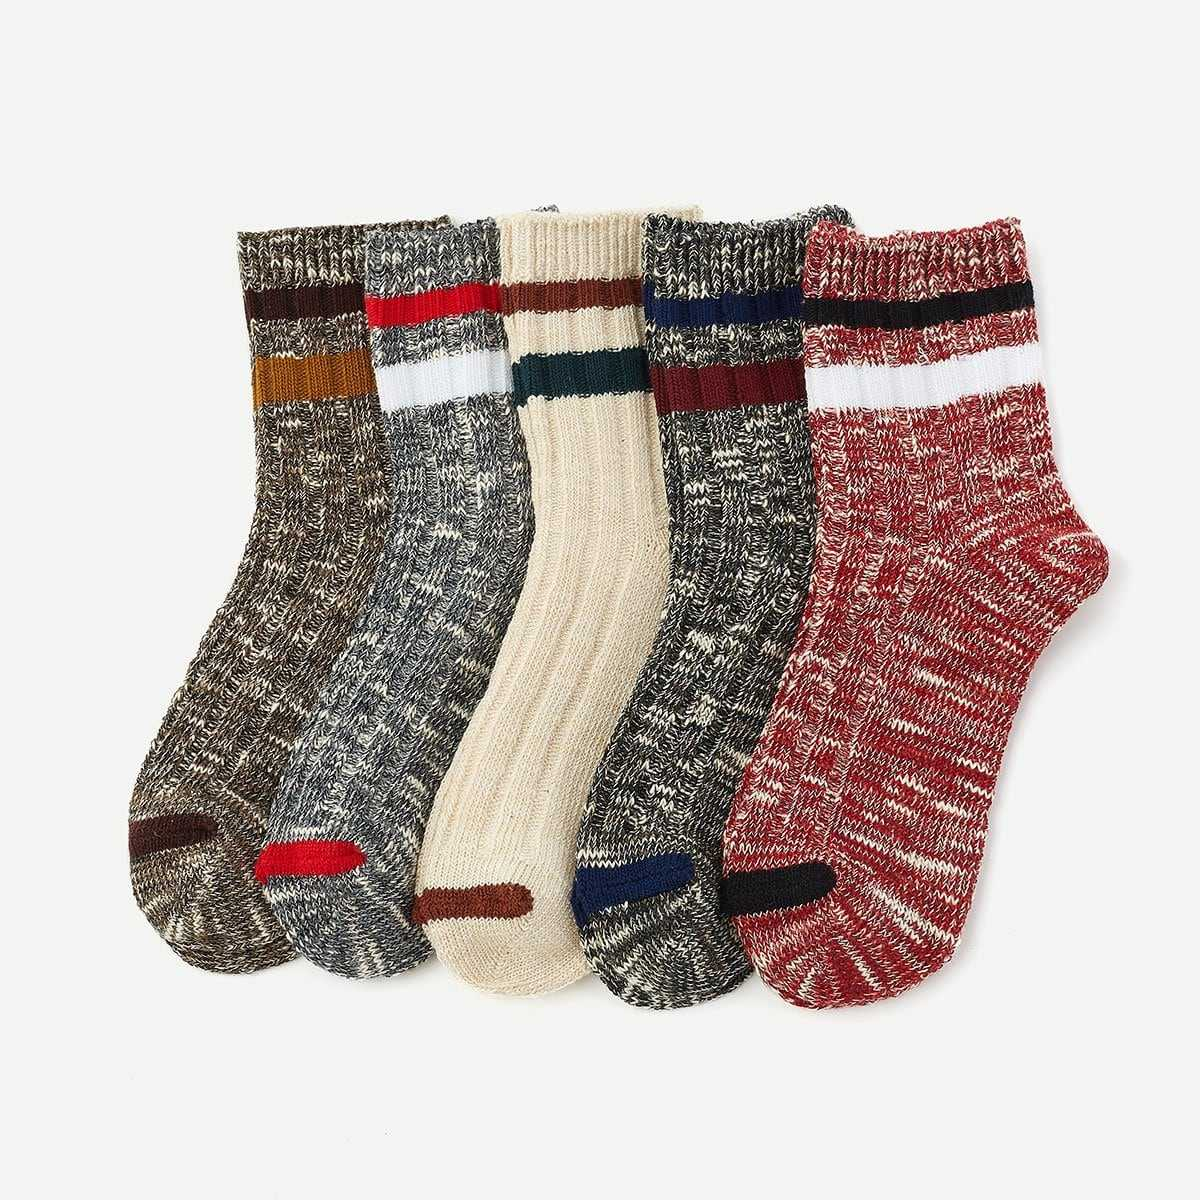 Rib Knit Socks 5pairs in Multicolor by ROMWE on GOOFASH